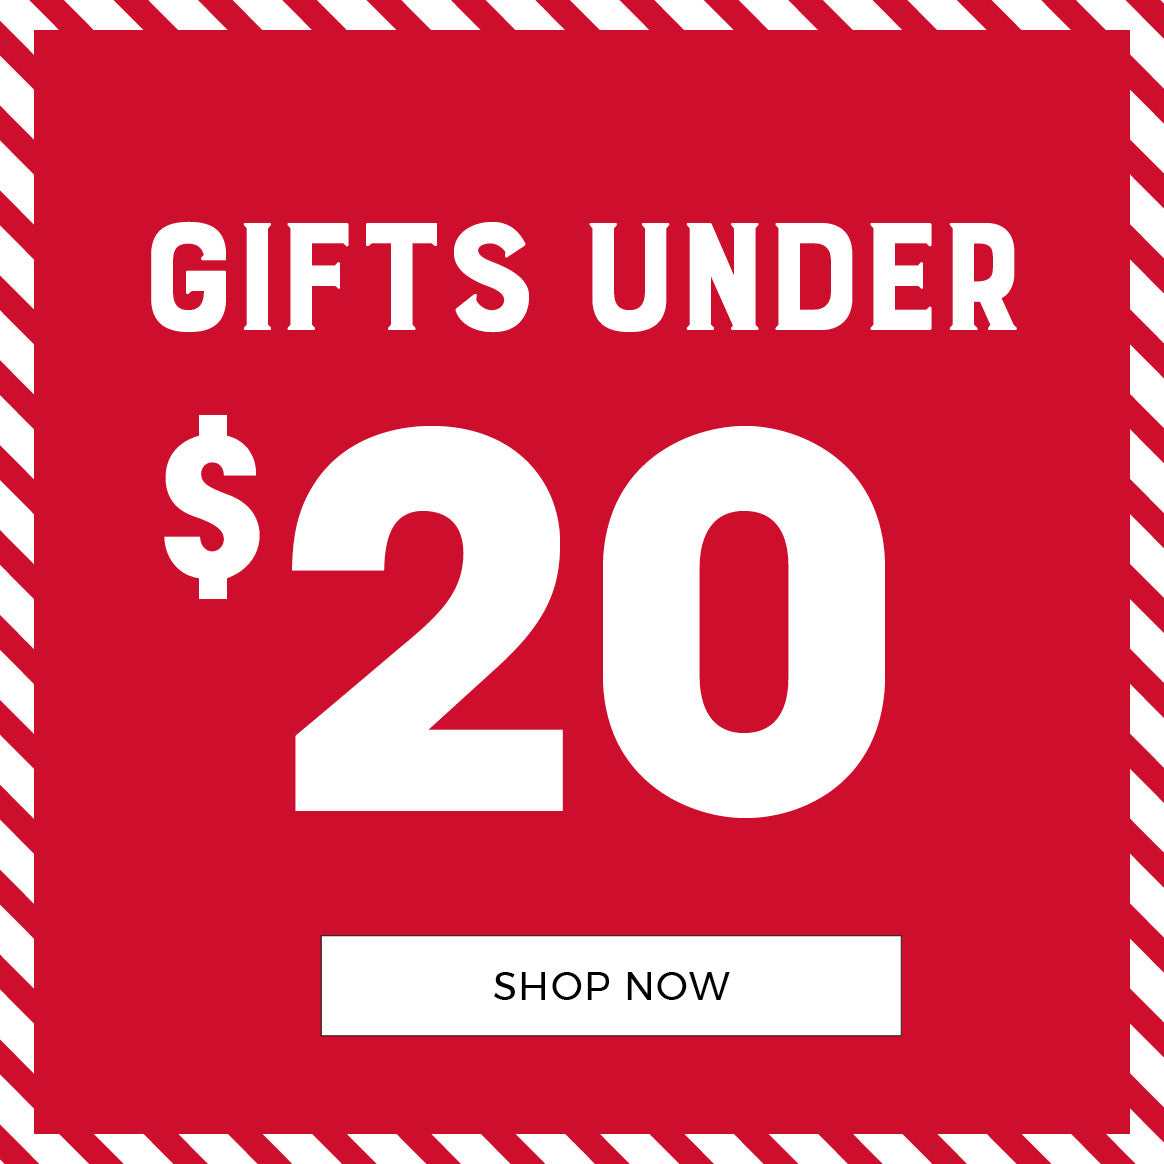 Stitches | Gifts Under $20 - Shop Now